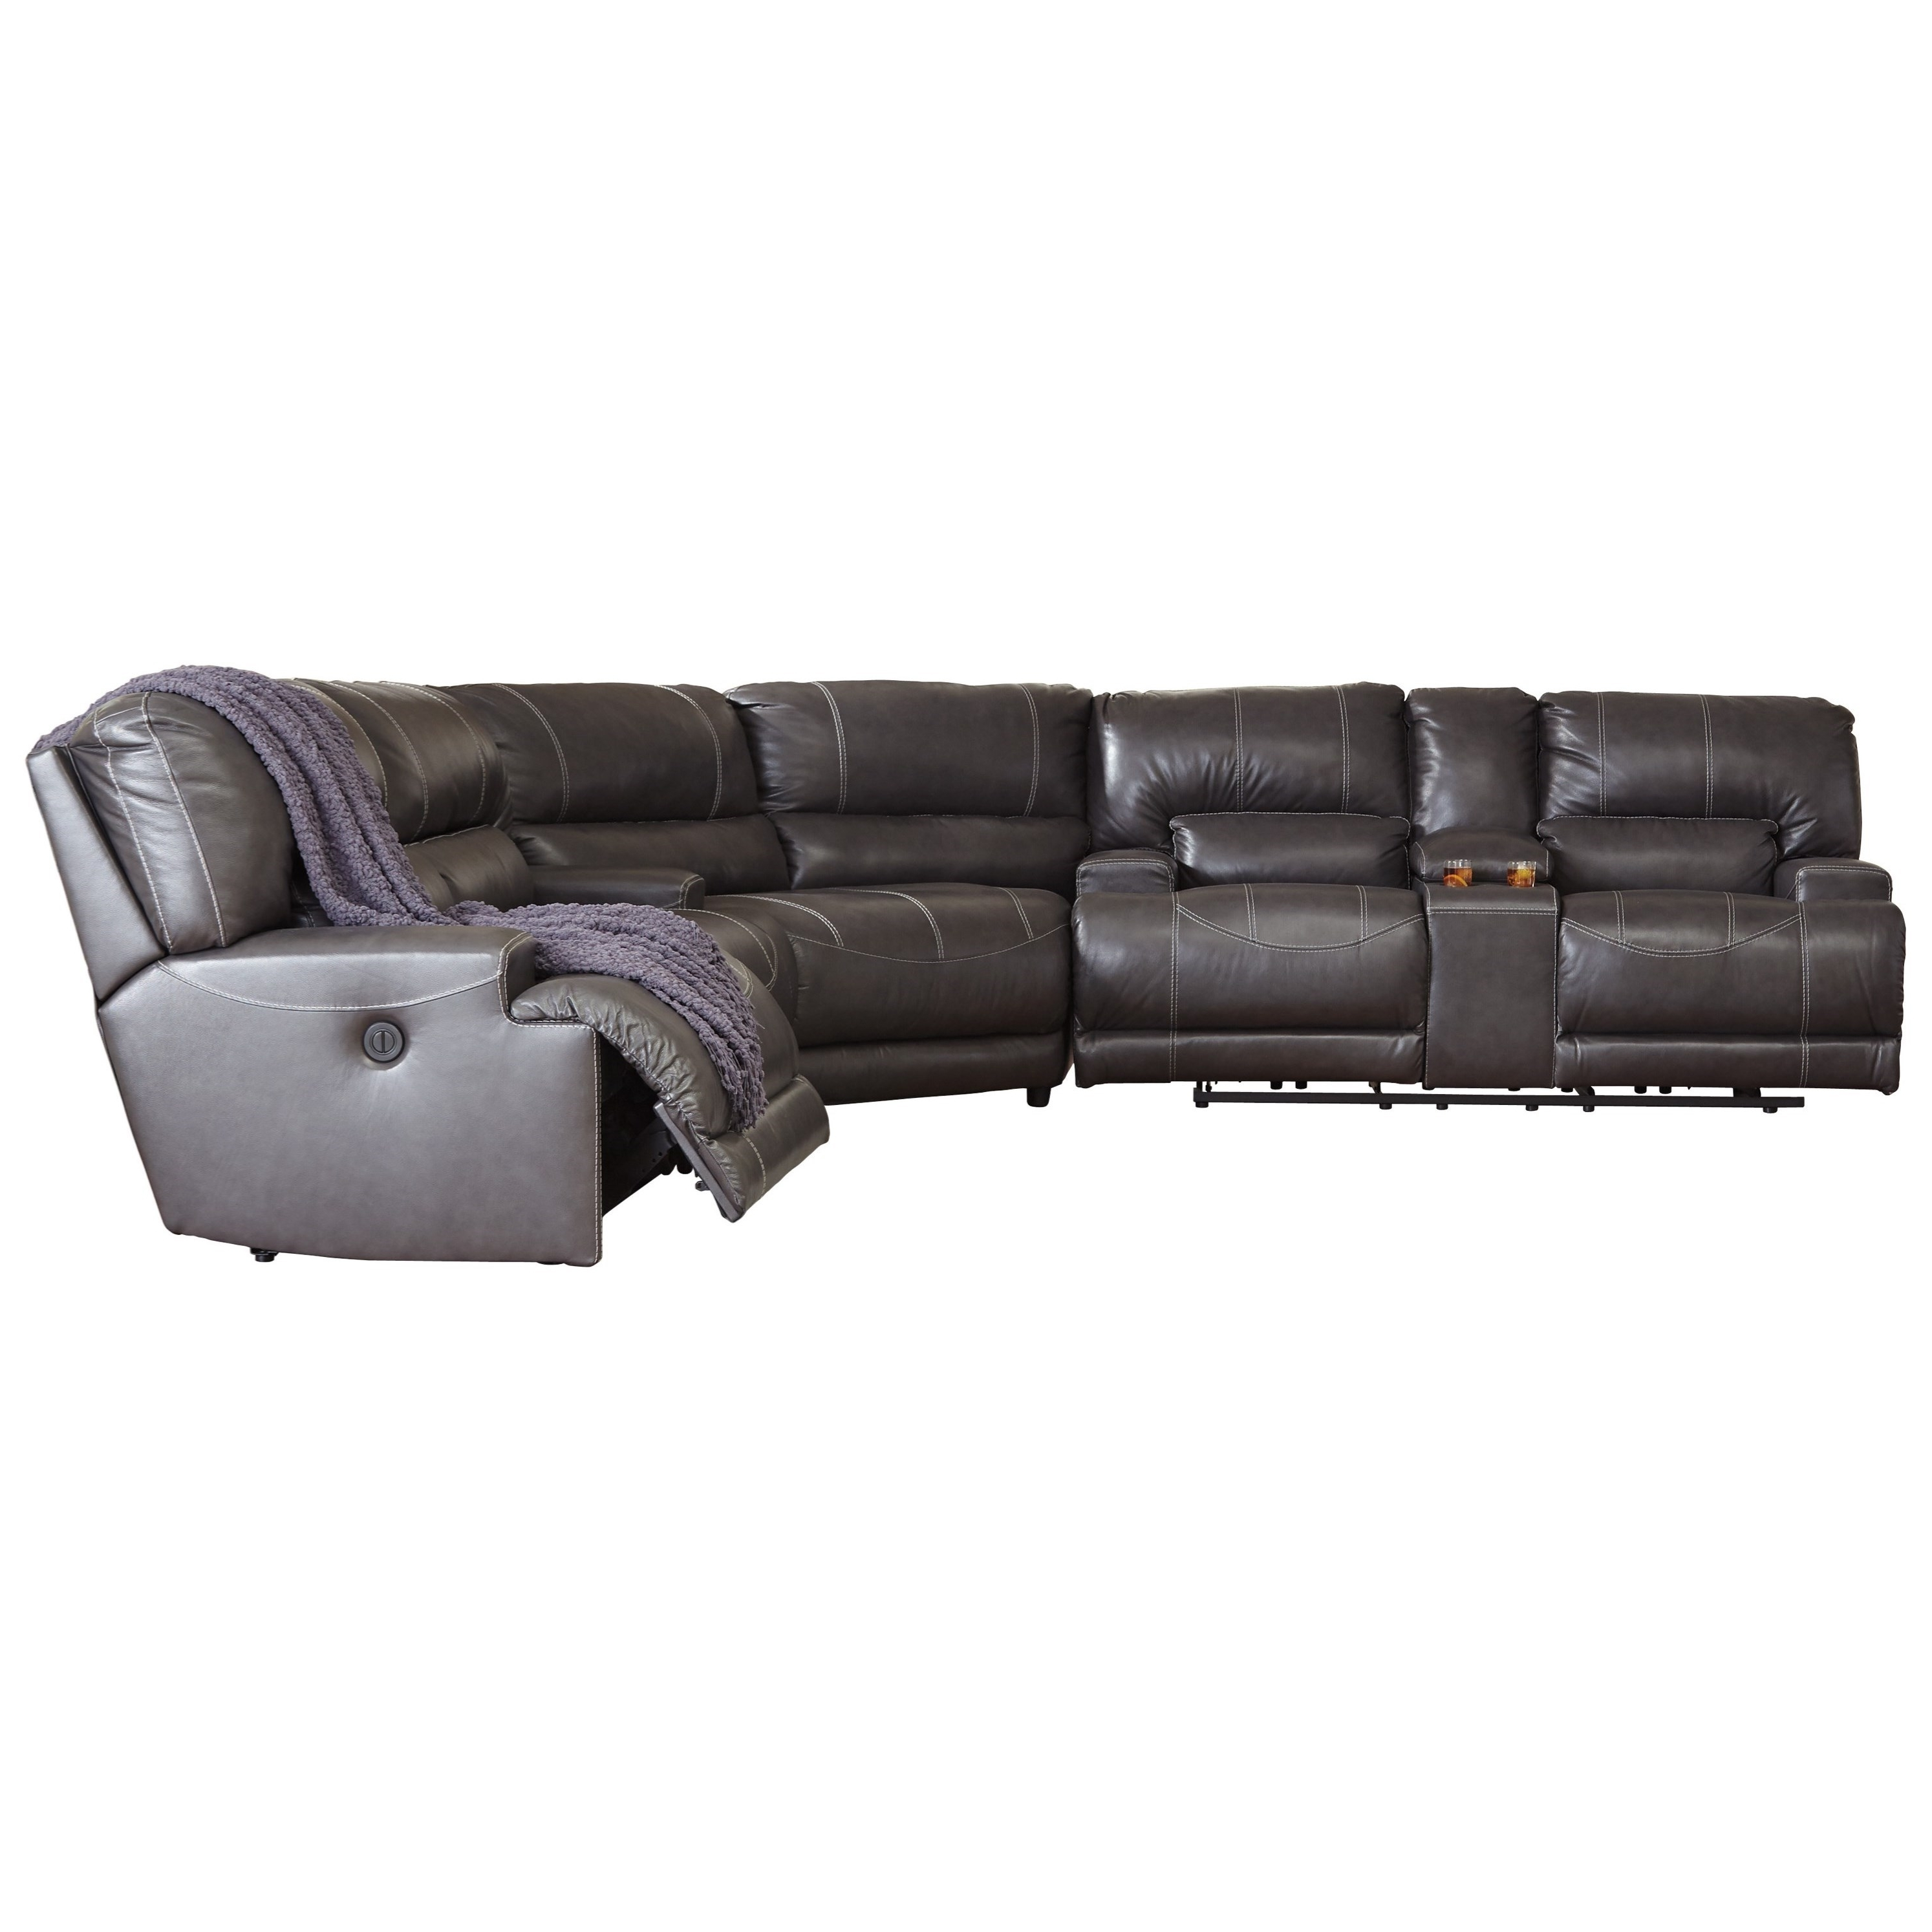 Trendy Signature Designashley Mccaskill Contemporary 3 Piece Leather Throughout Hattiesburg Ms Sectional Sofas (View 14 of 20)